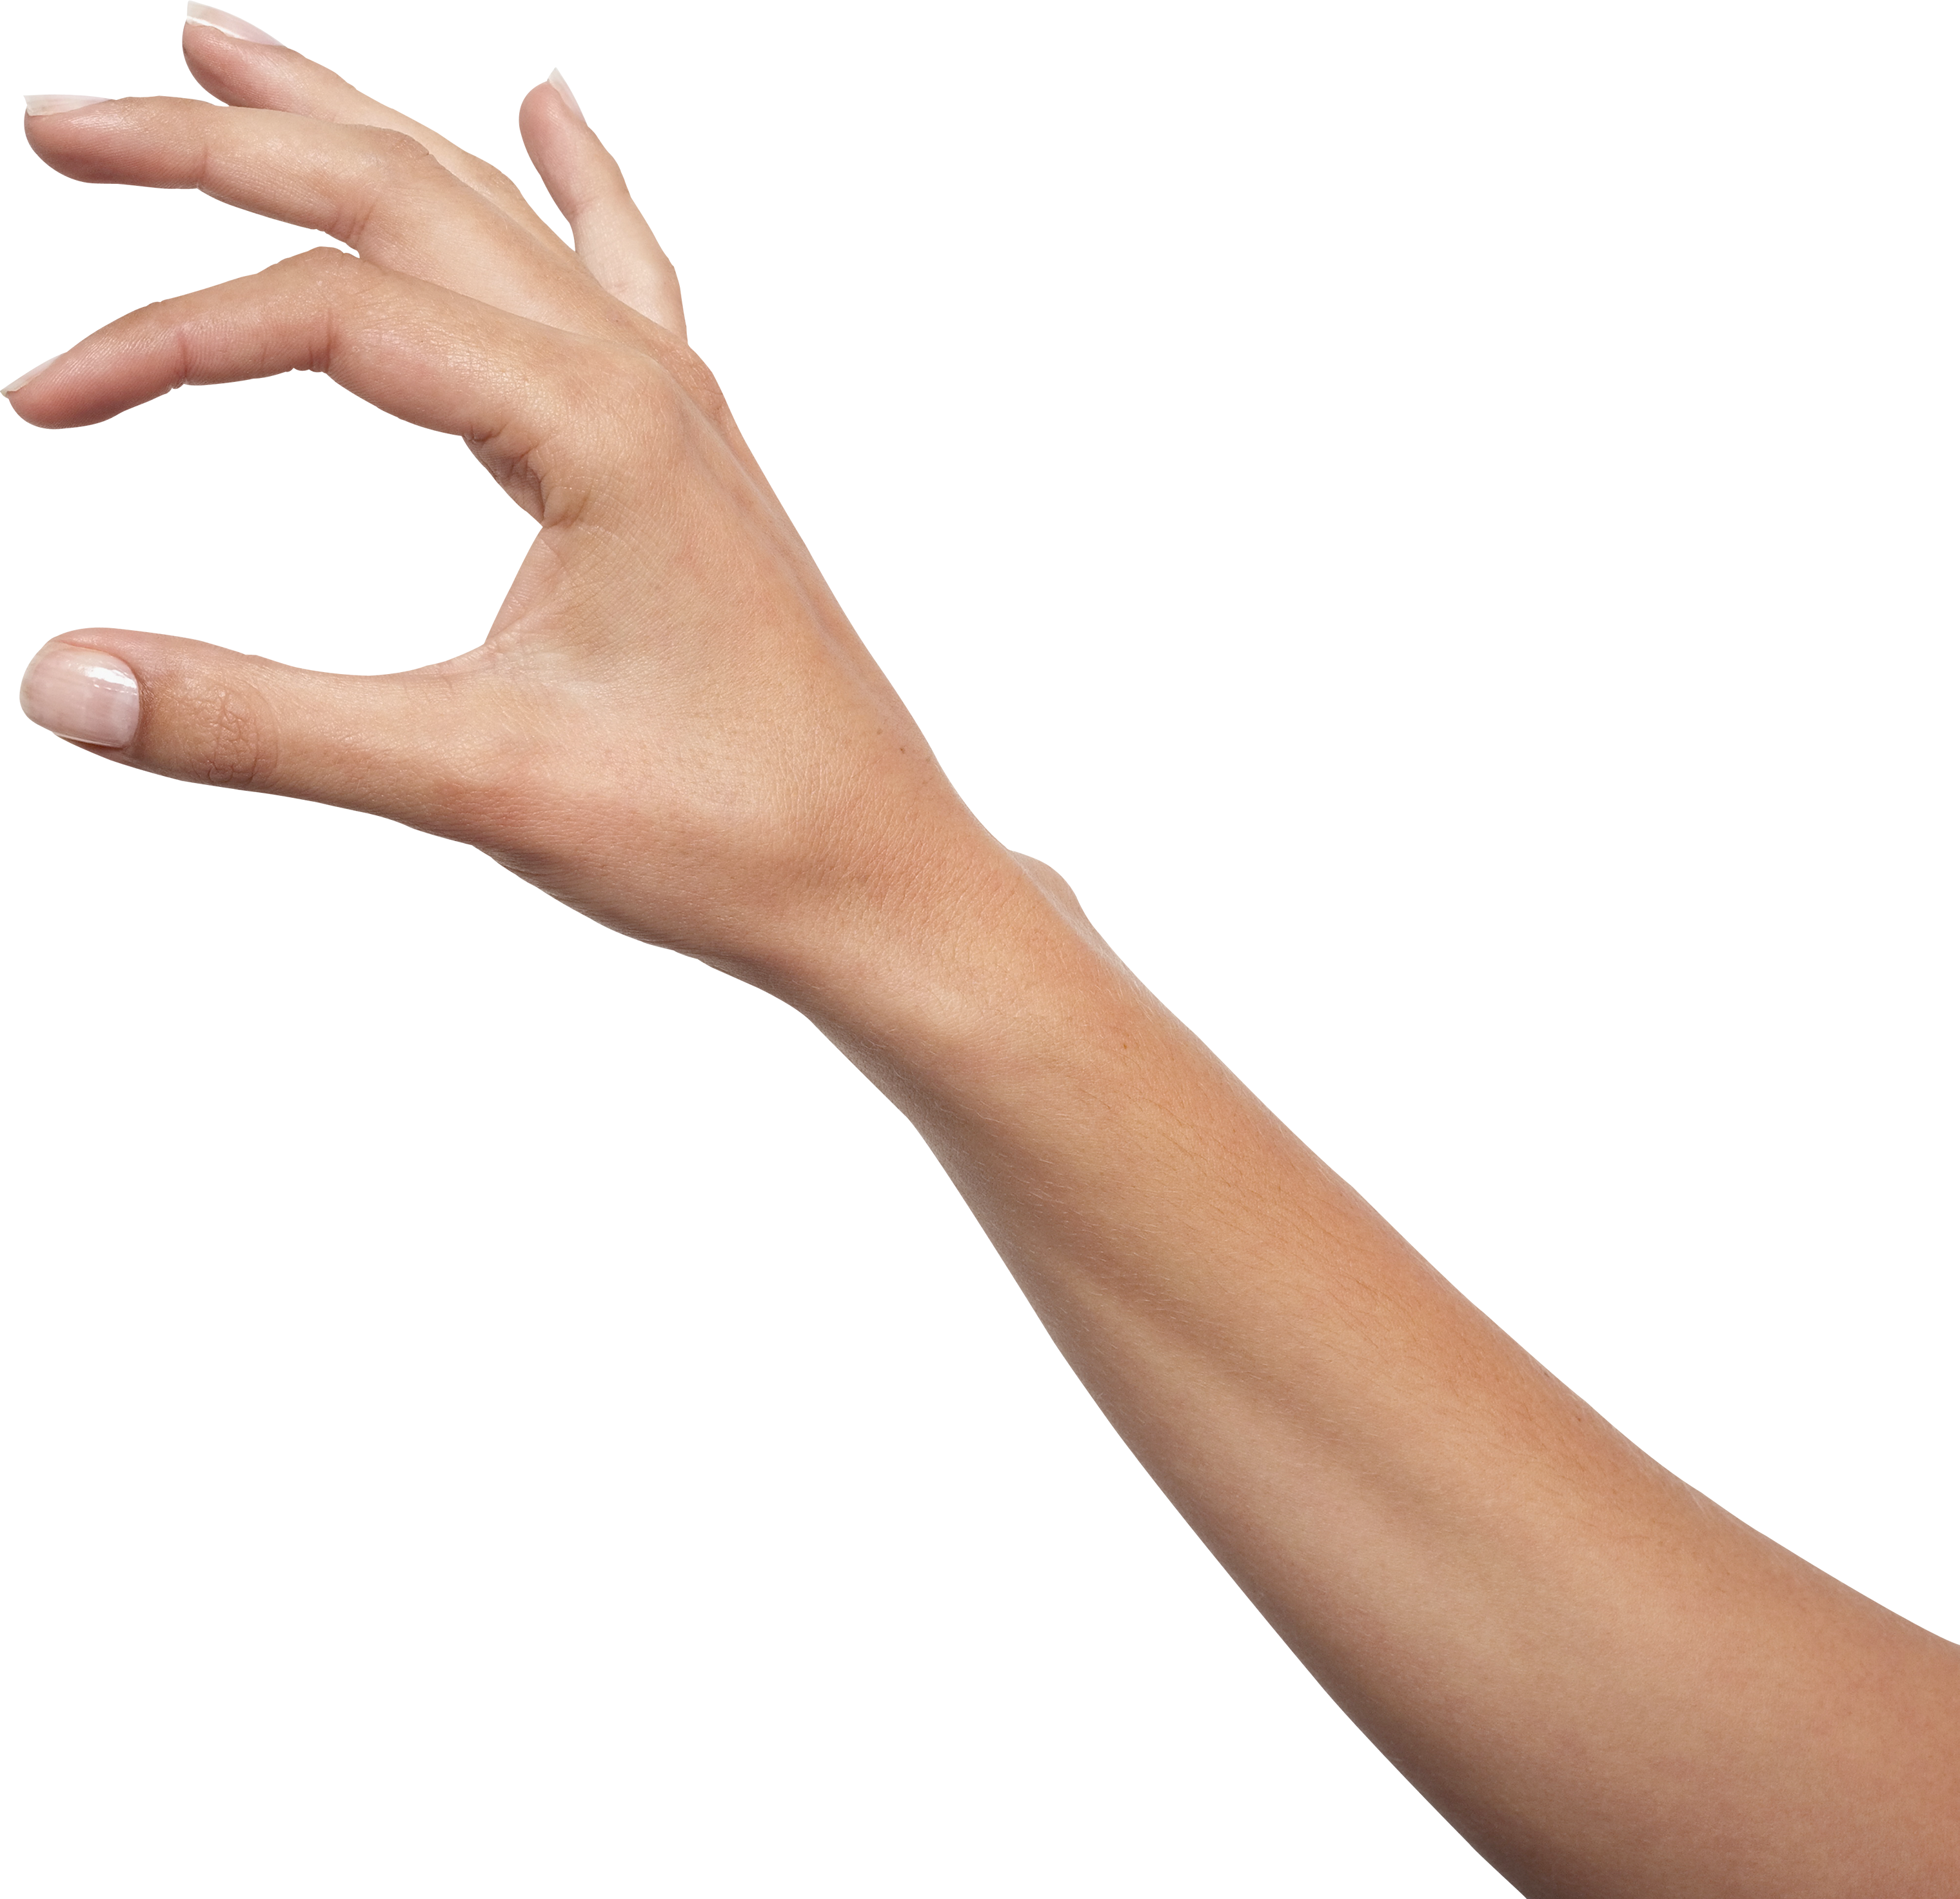 Url Http Pngimg Com Upload Hands Png868 Png Hand Images Png Images For Editing Hand Photo